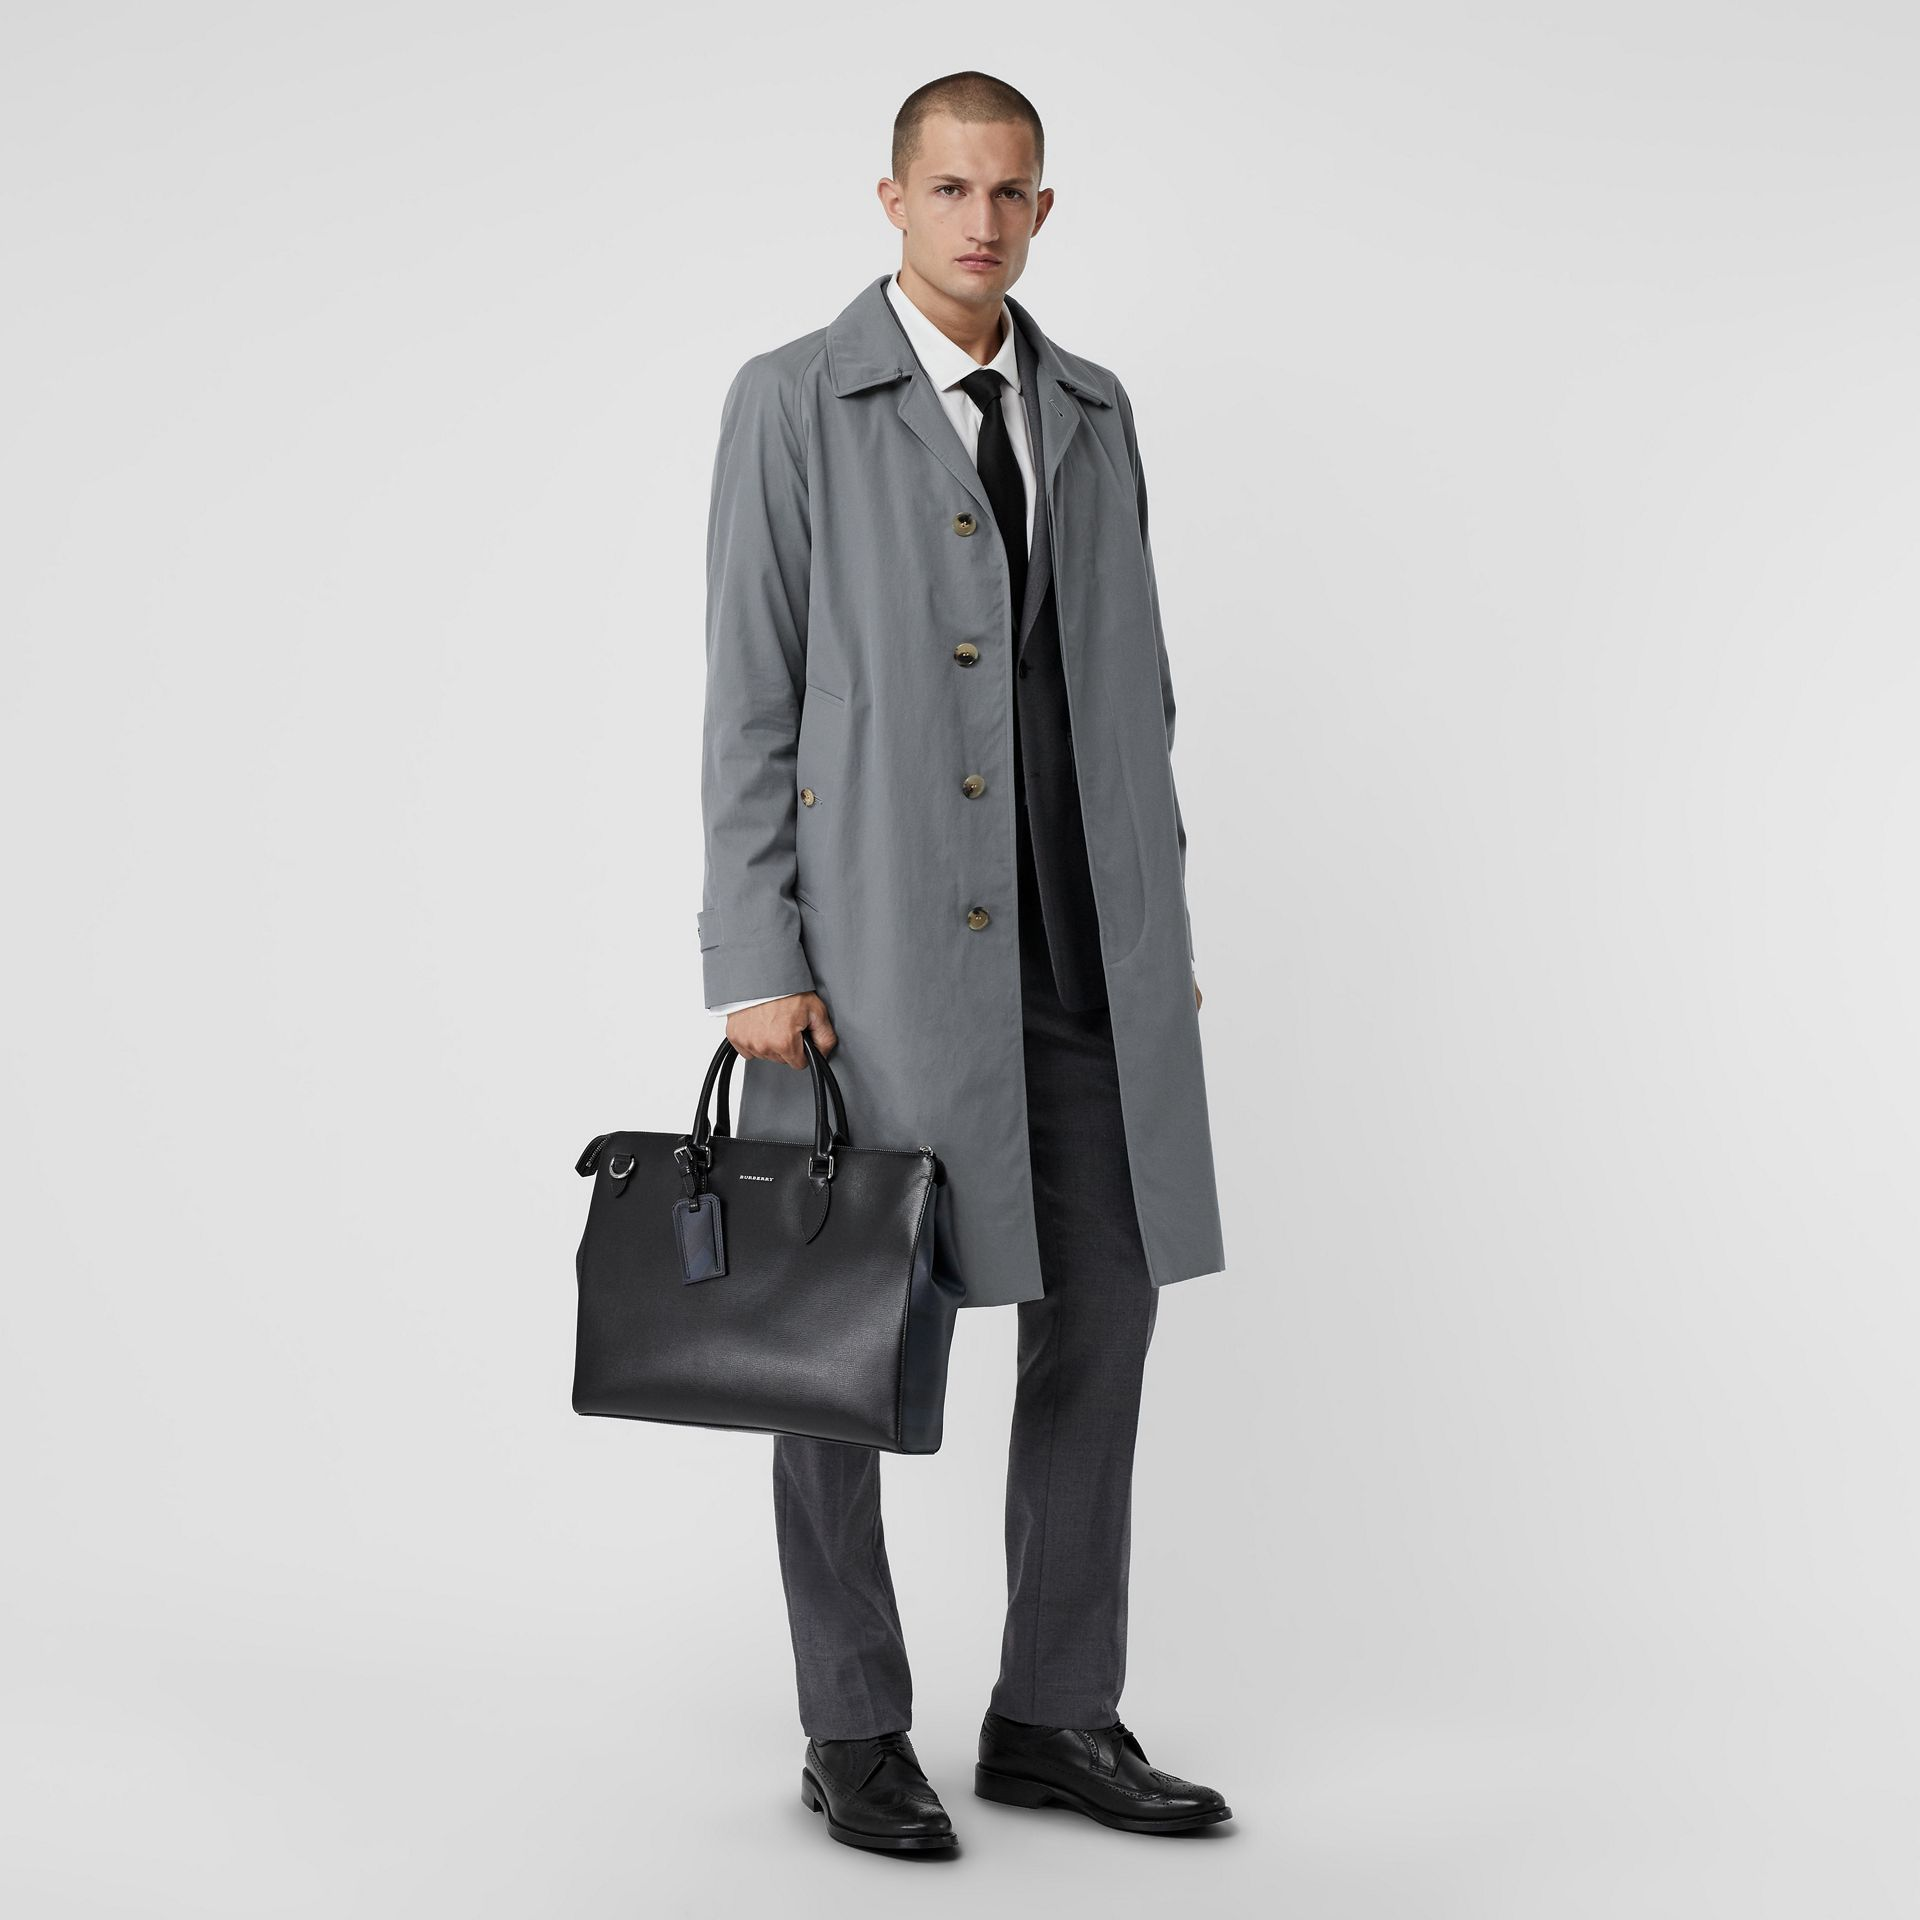 Large London Leather Briefcase in Black - Men | Burberry Australia - gallery image 2